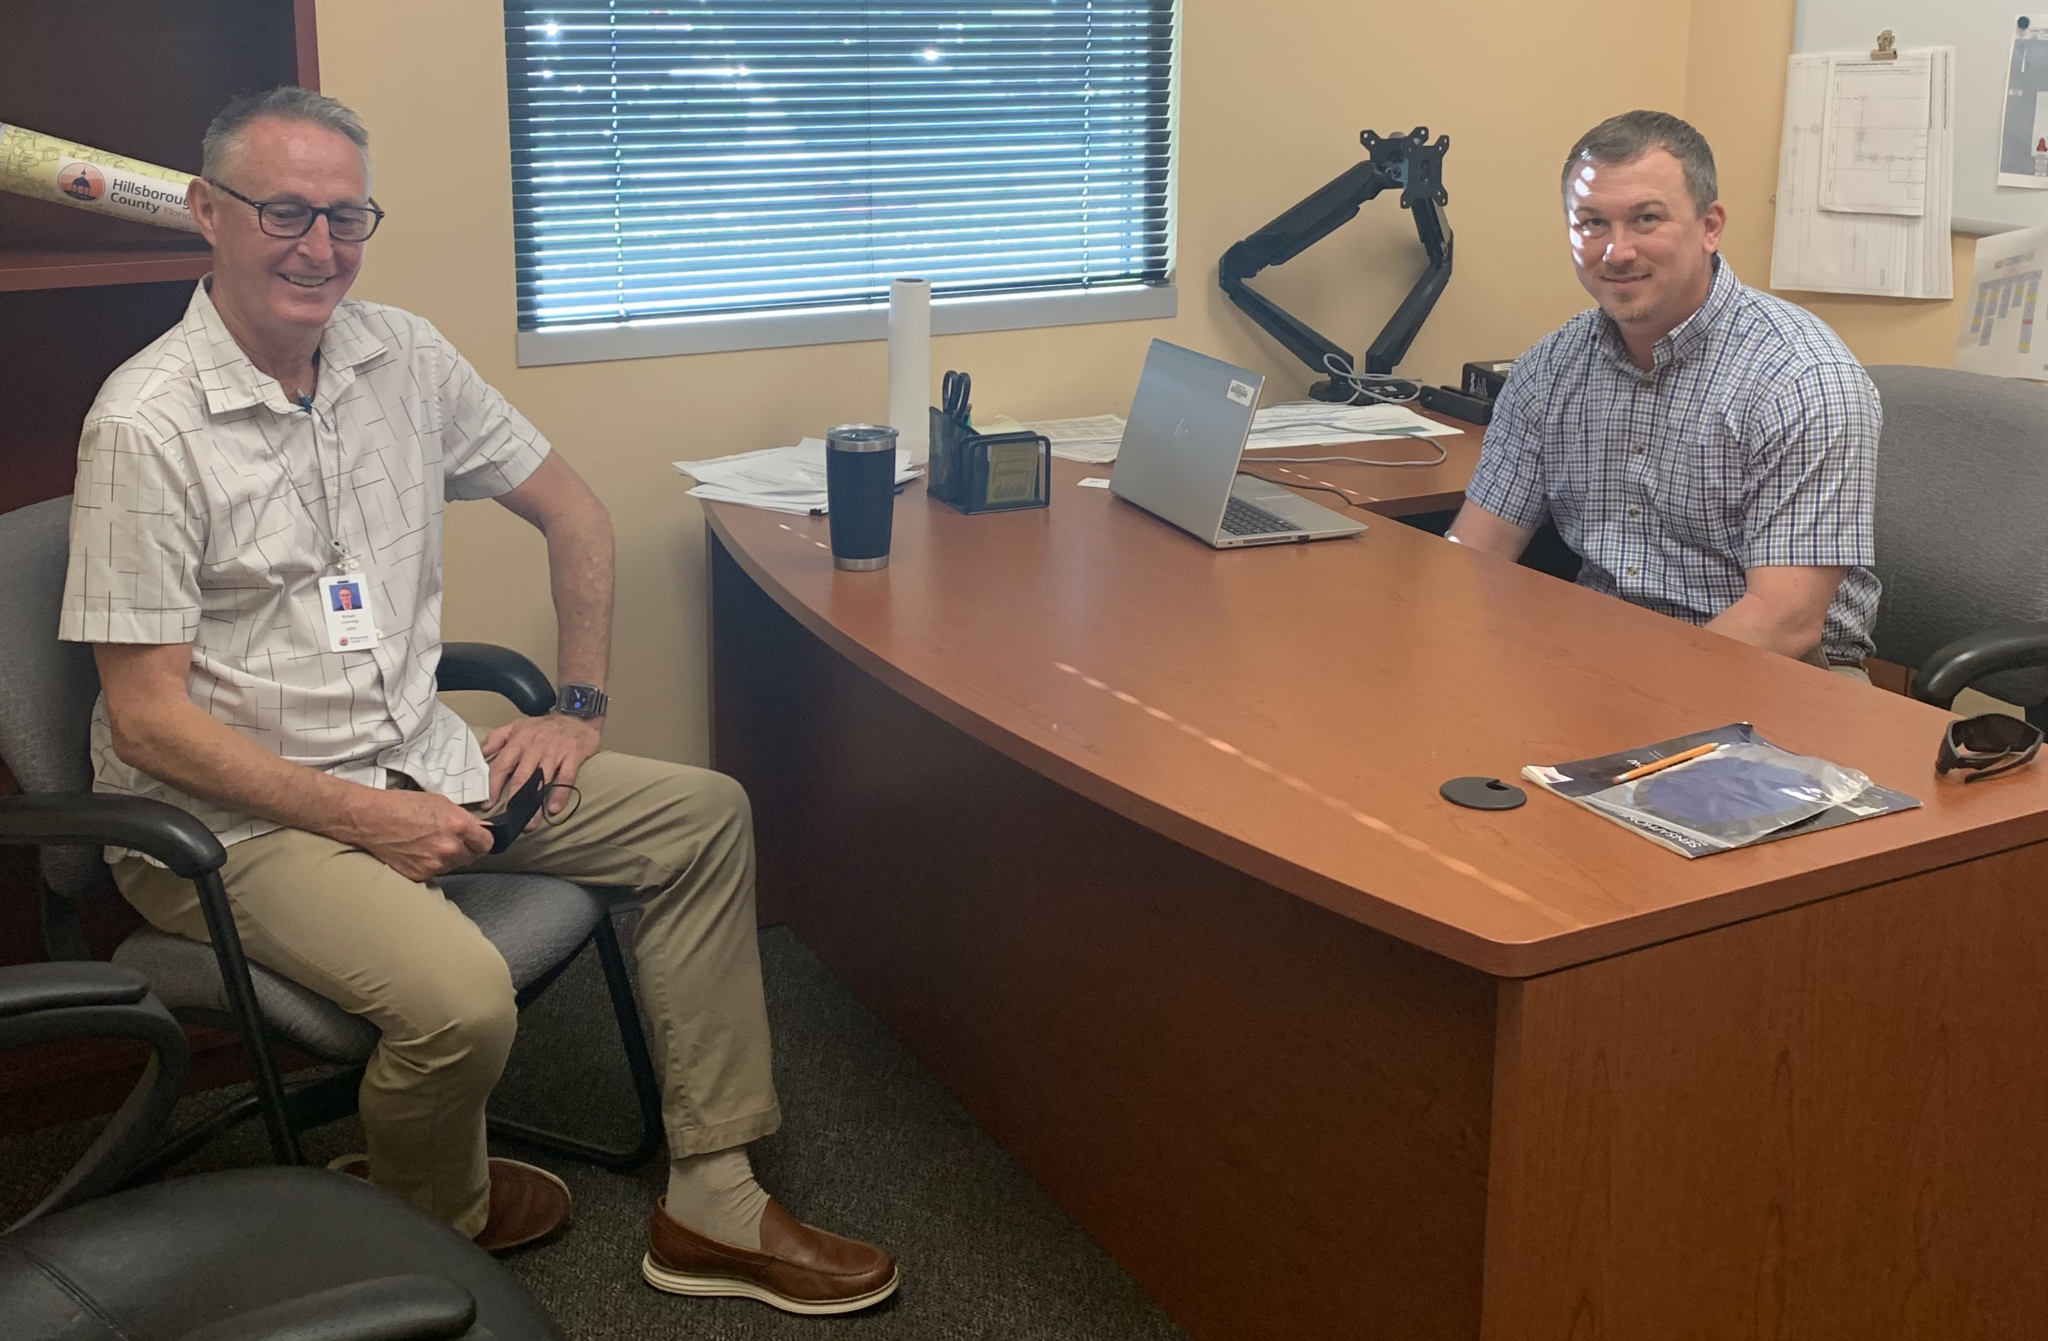 Outgoing director Rich Cummings (left) and incoming director Chris Jones discuss water/wastewater strategies for Hillsborough County's future.